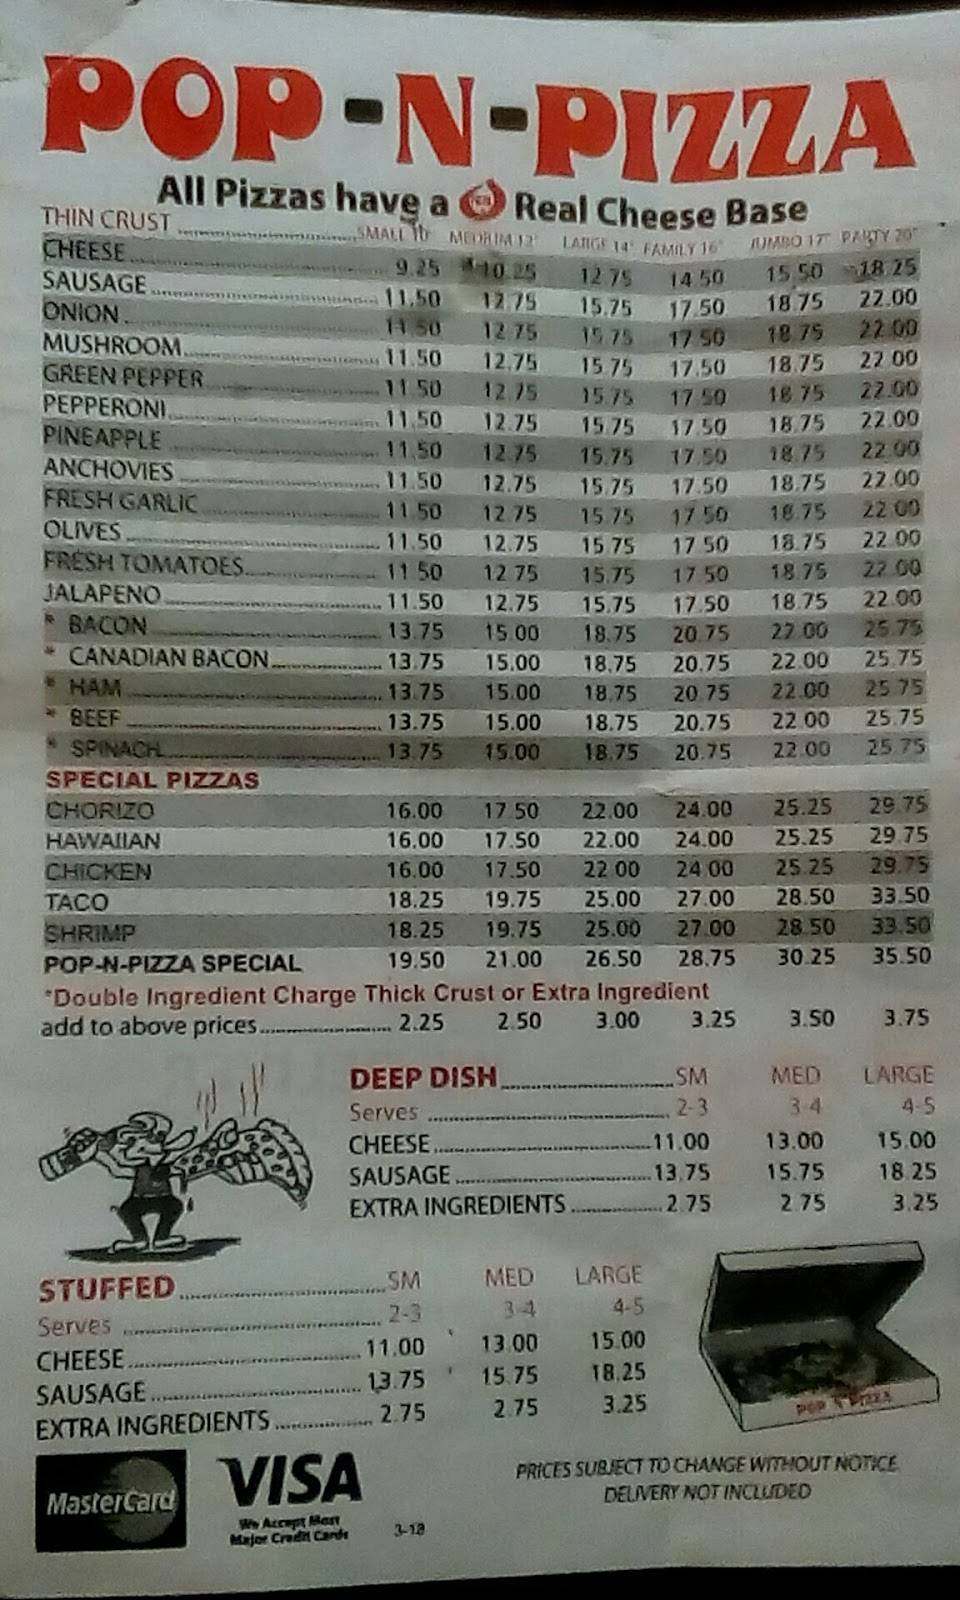 Pop-N-Pizza | restaurant | 3701 W 59th St, Chicago, IL 60629, USA | 7732848500 OR +1 773-284-8500